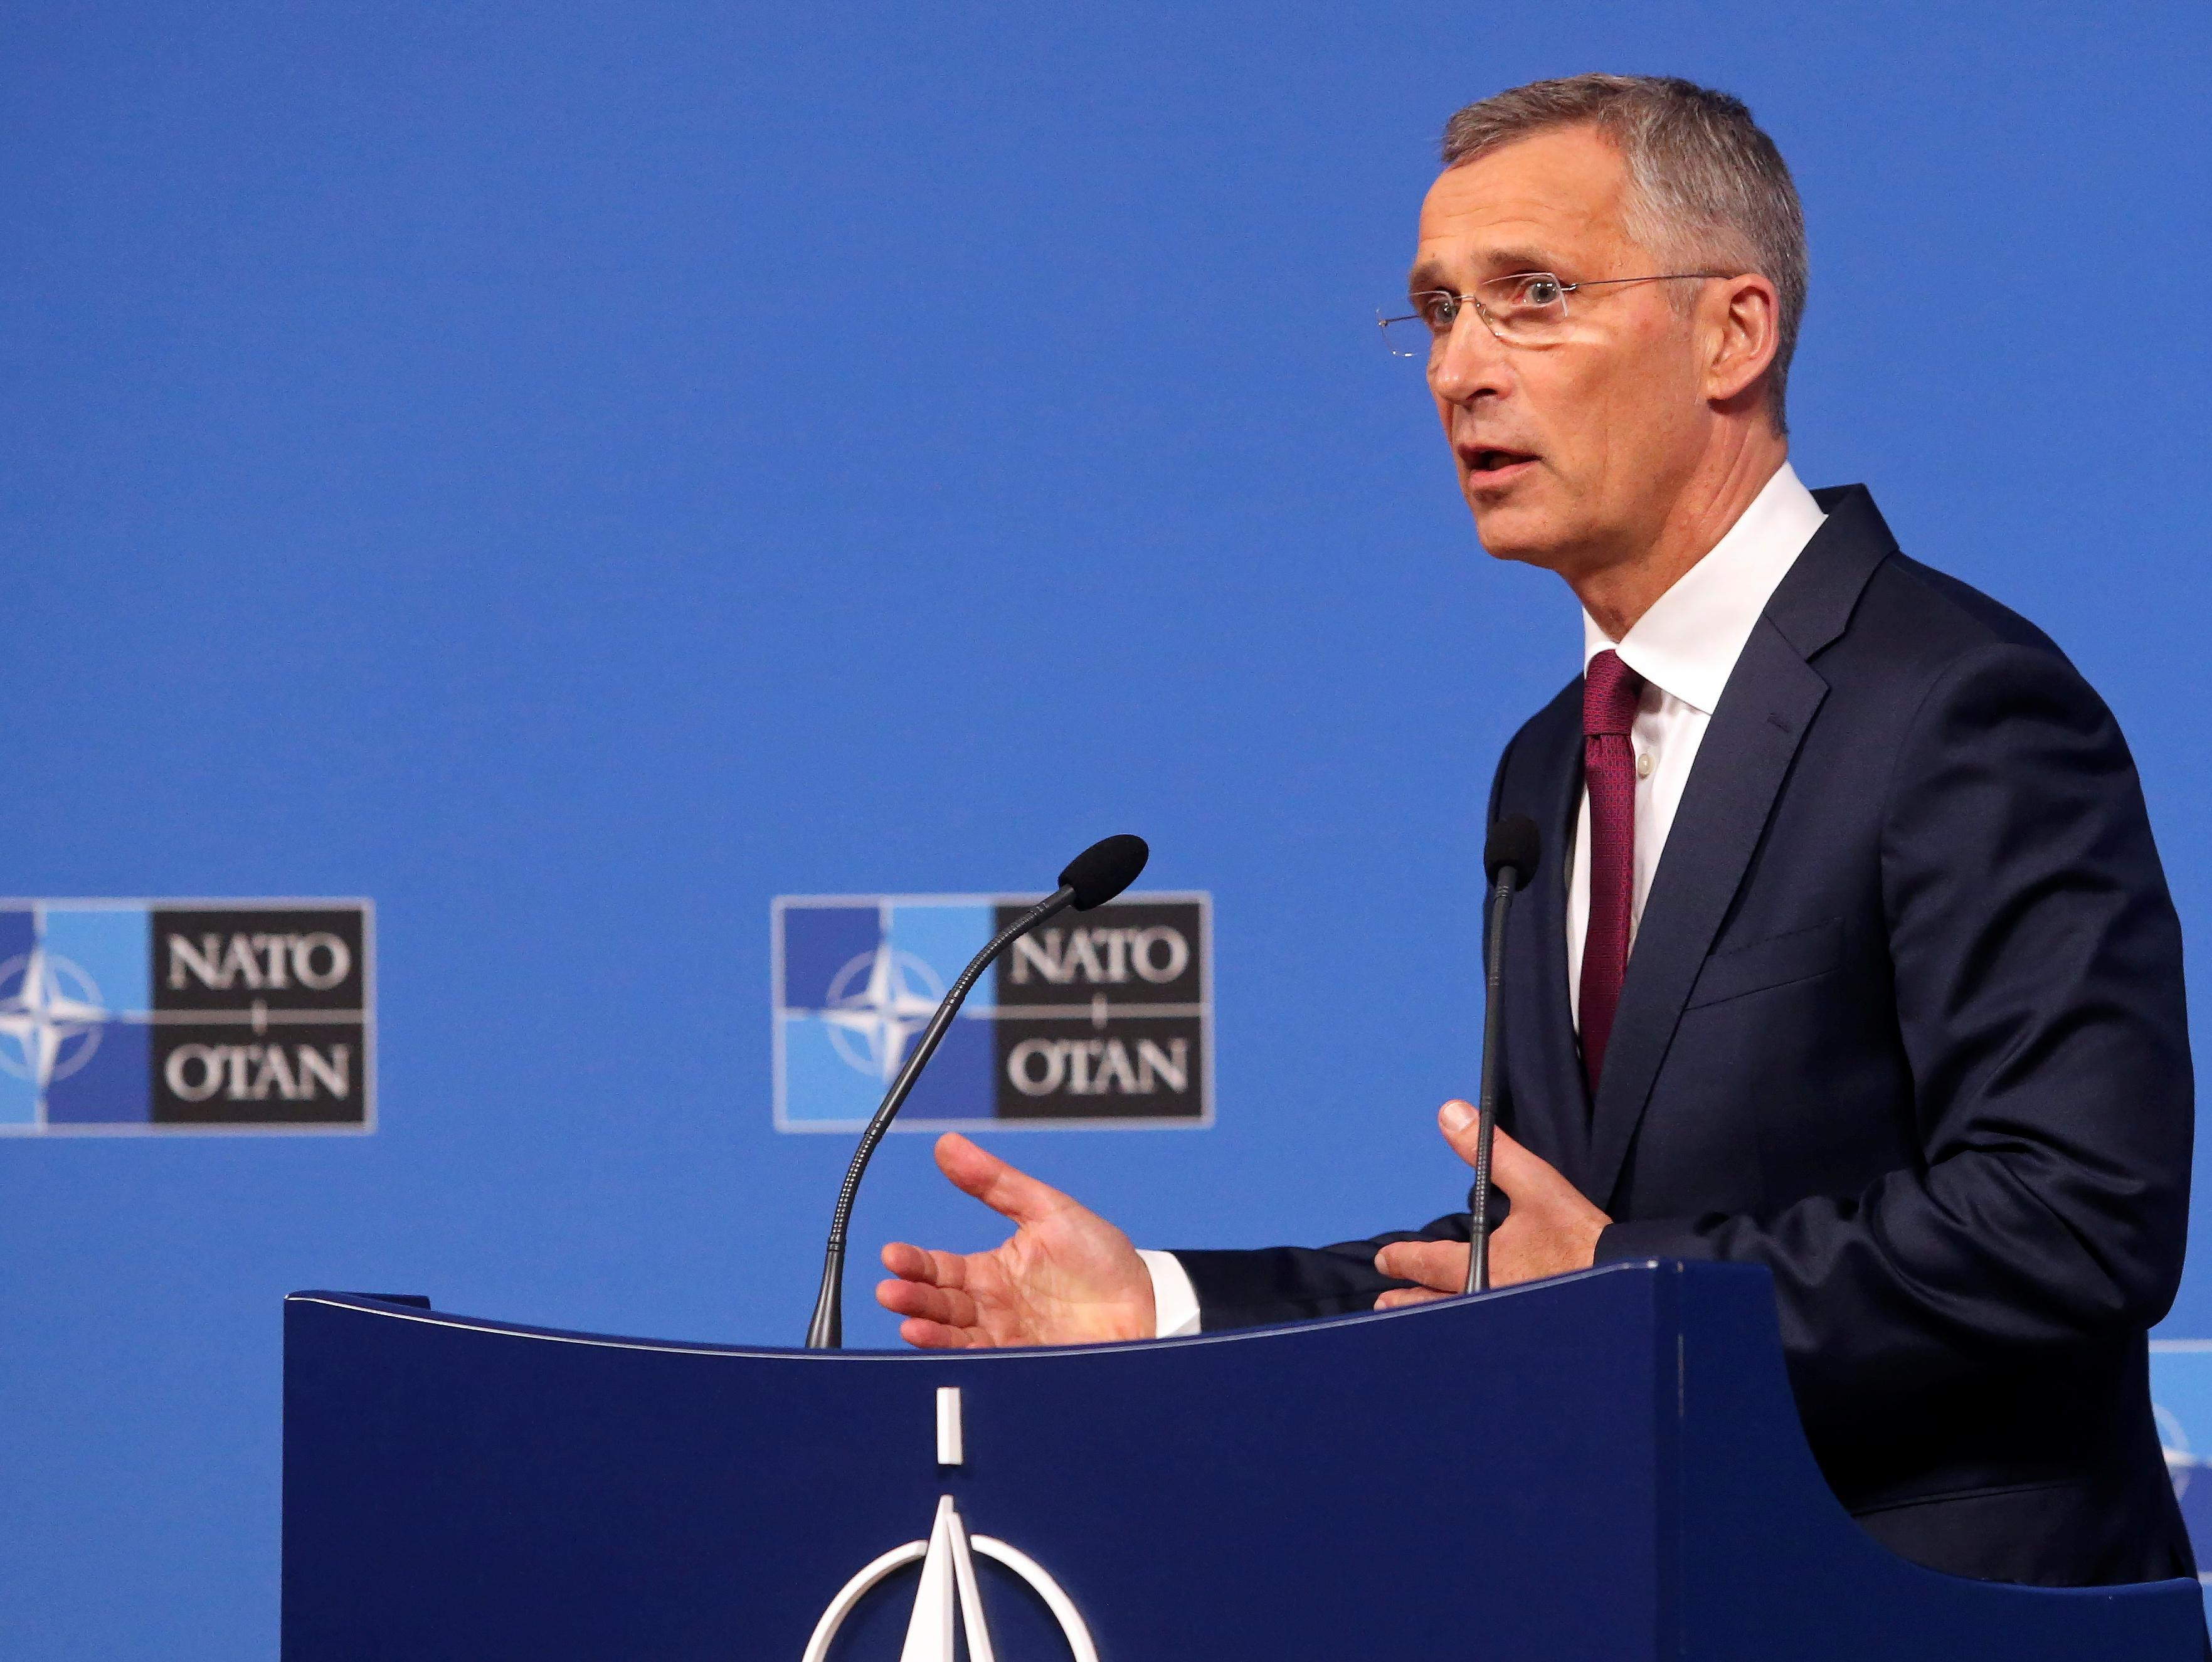 NATO weighs options to deter new Russian missile threat